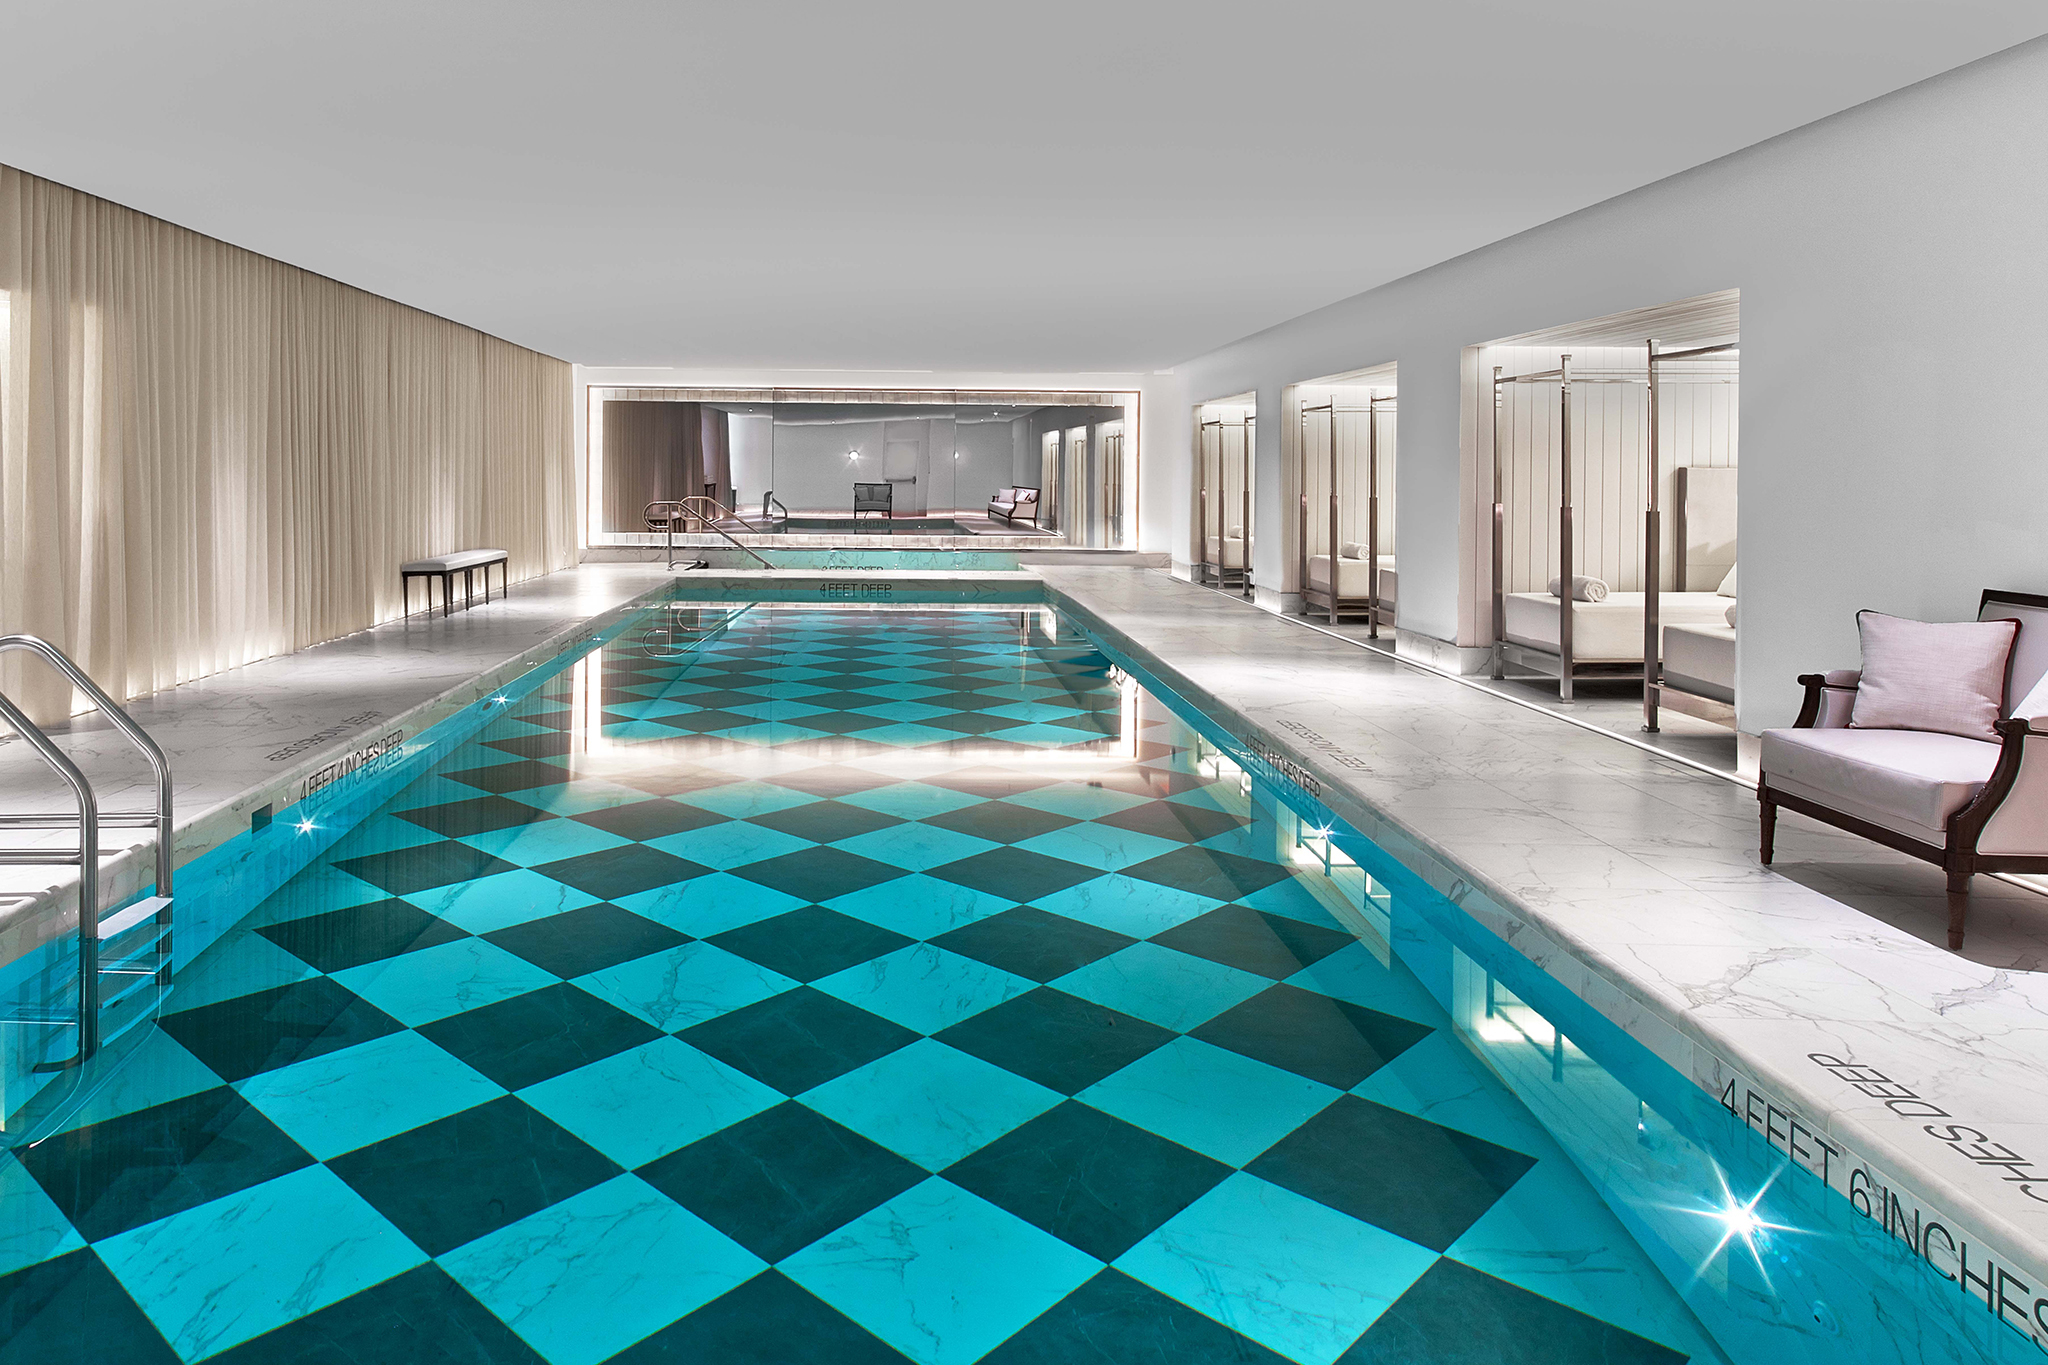 15 Best Hotels With Indoor Pools In Spas Or On Rooftops In Nyc